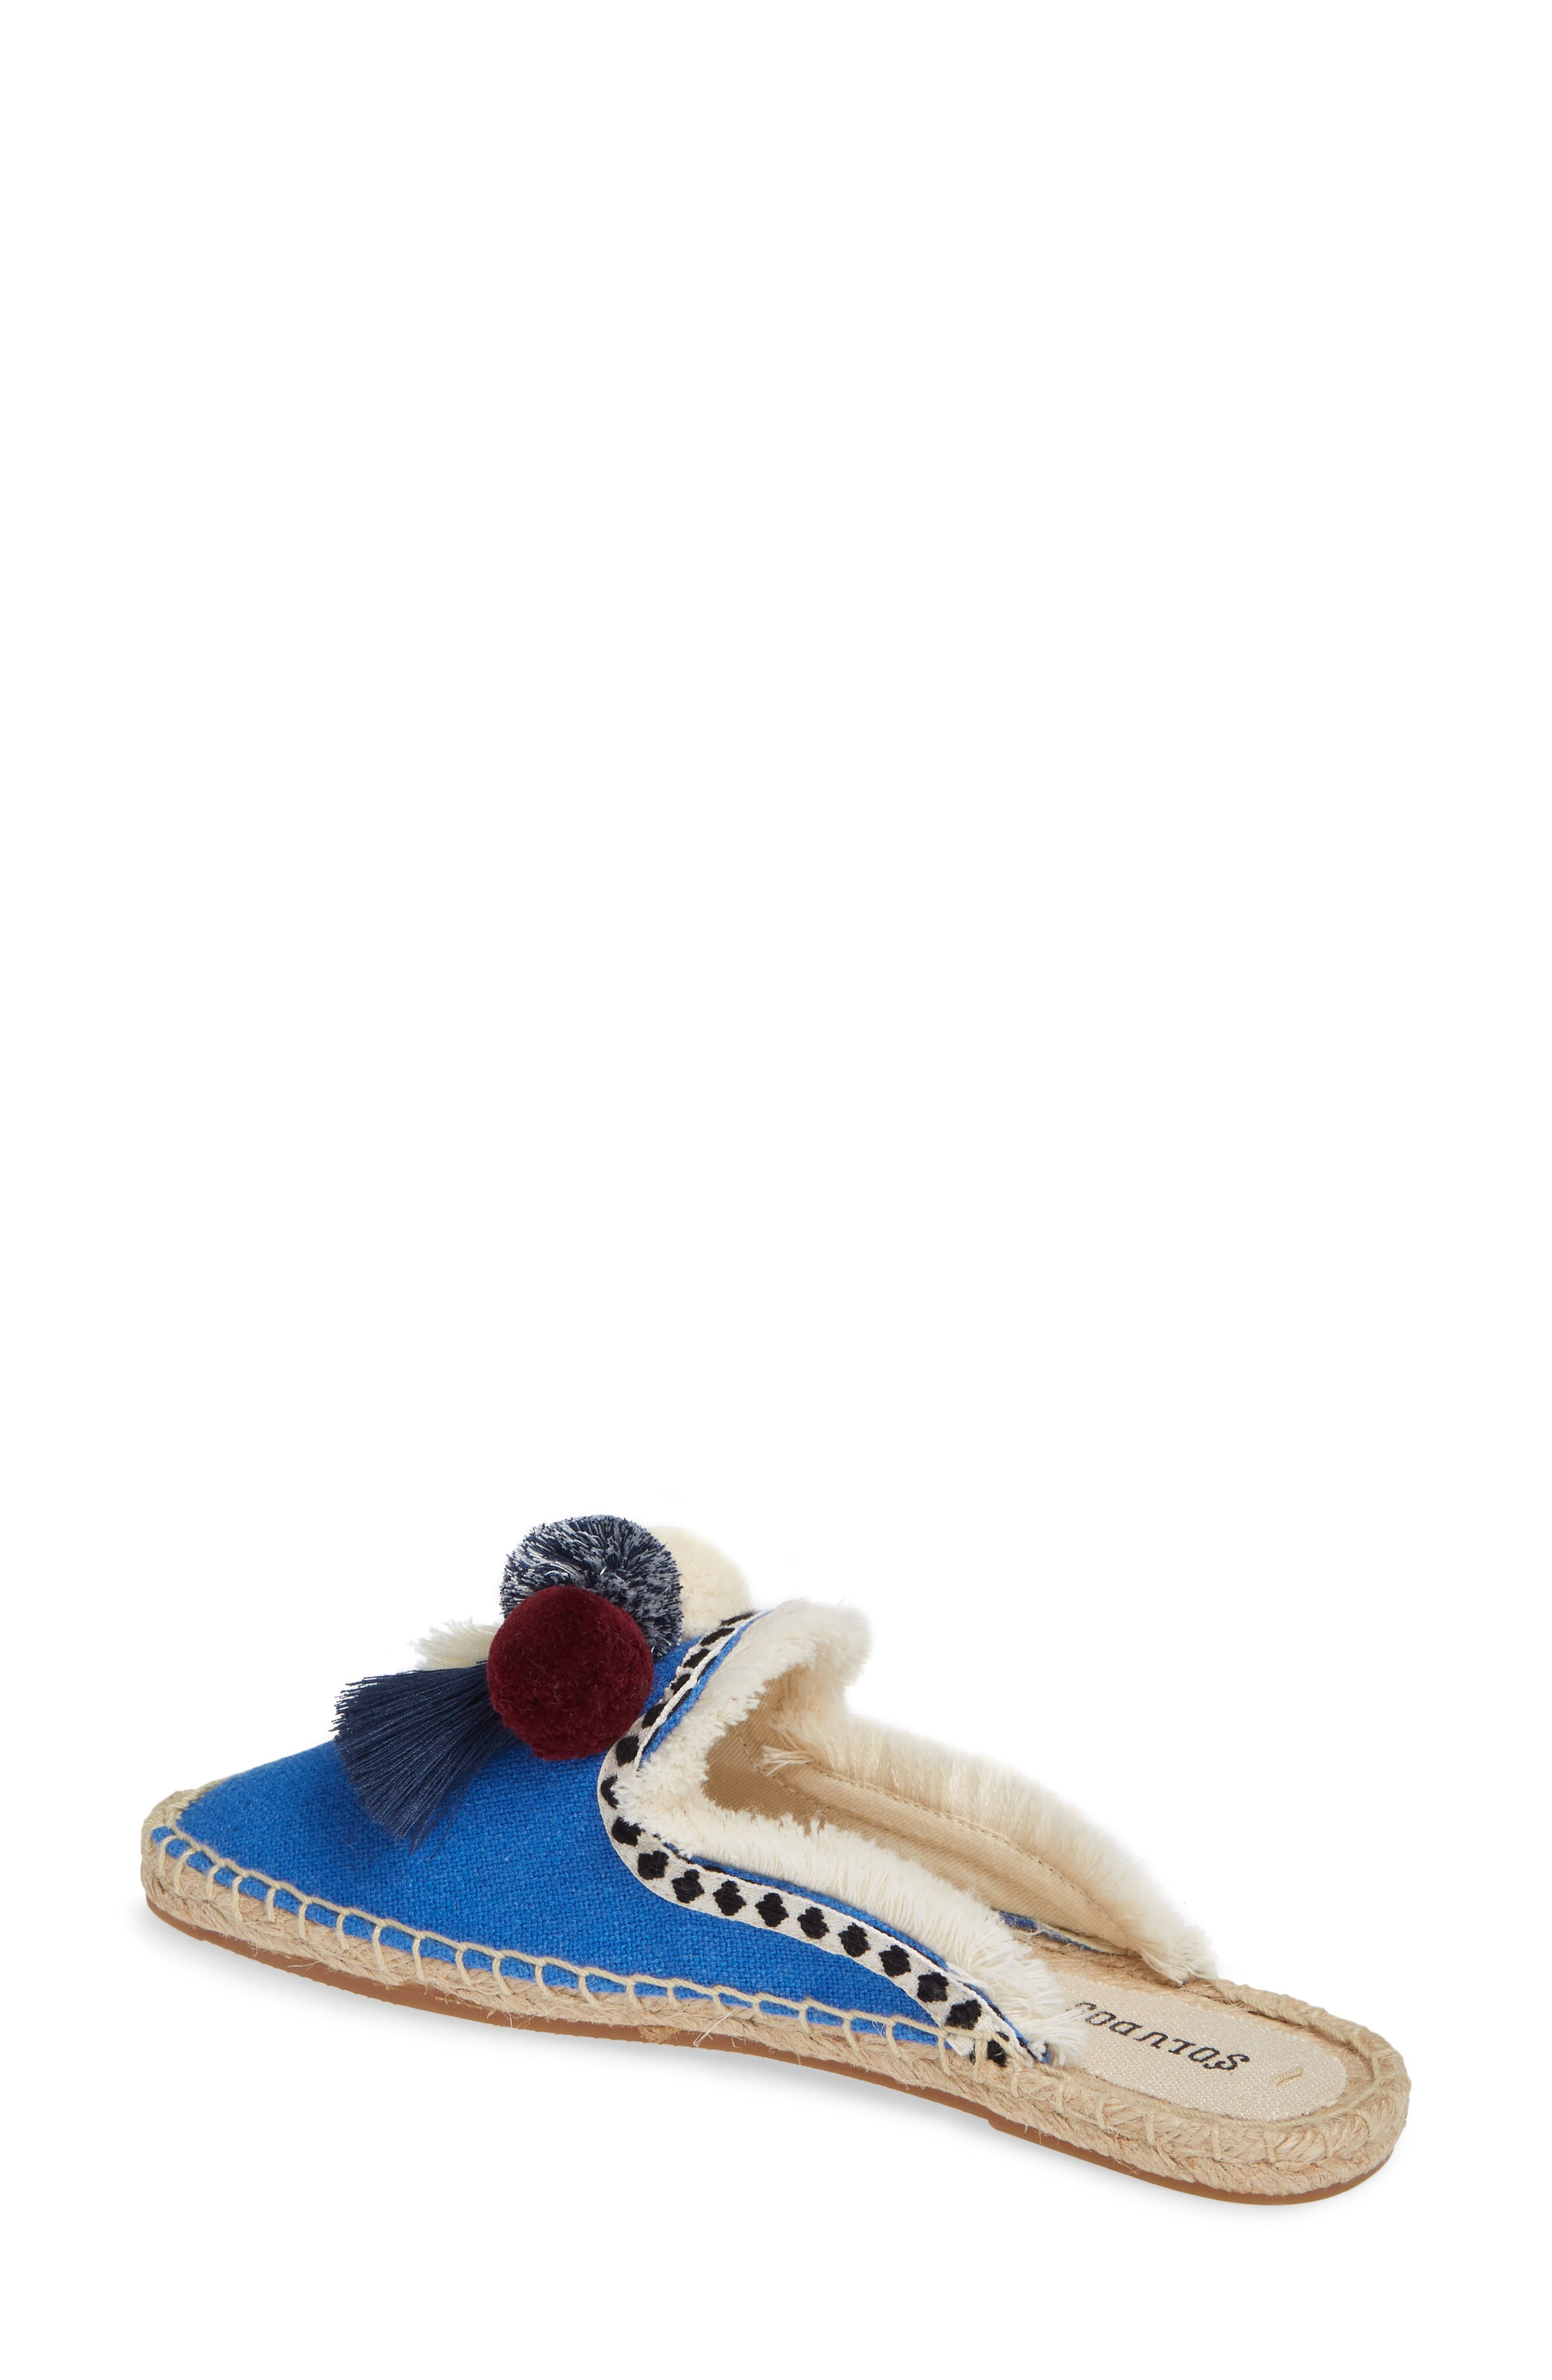 Pompom Espadrille Mule,                             Alternate thumbnail 2, color,                             MARLIN BLUE FABRIC